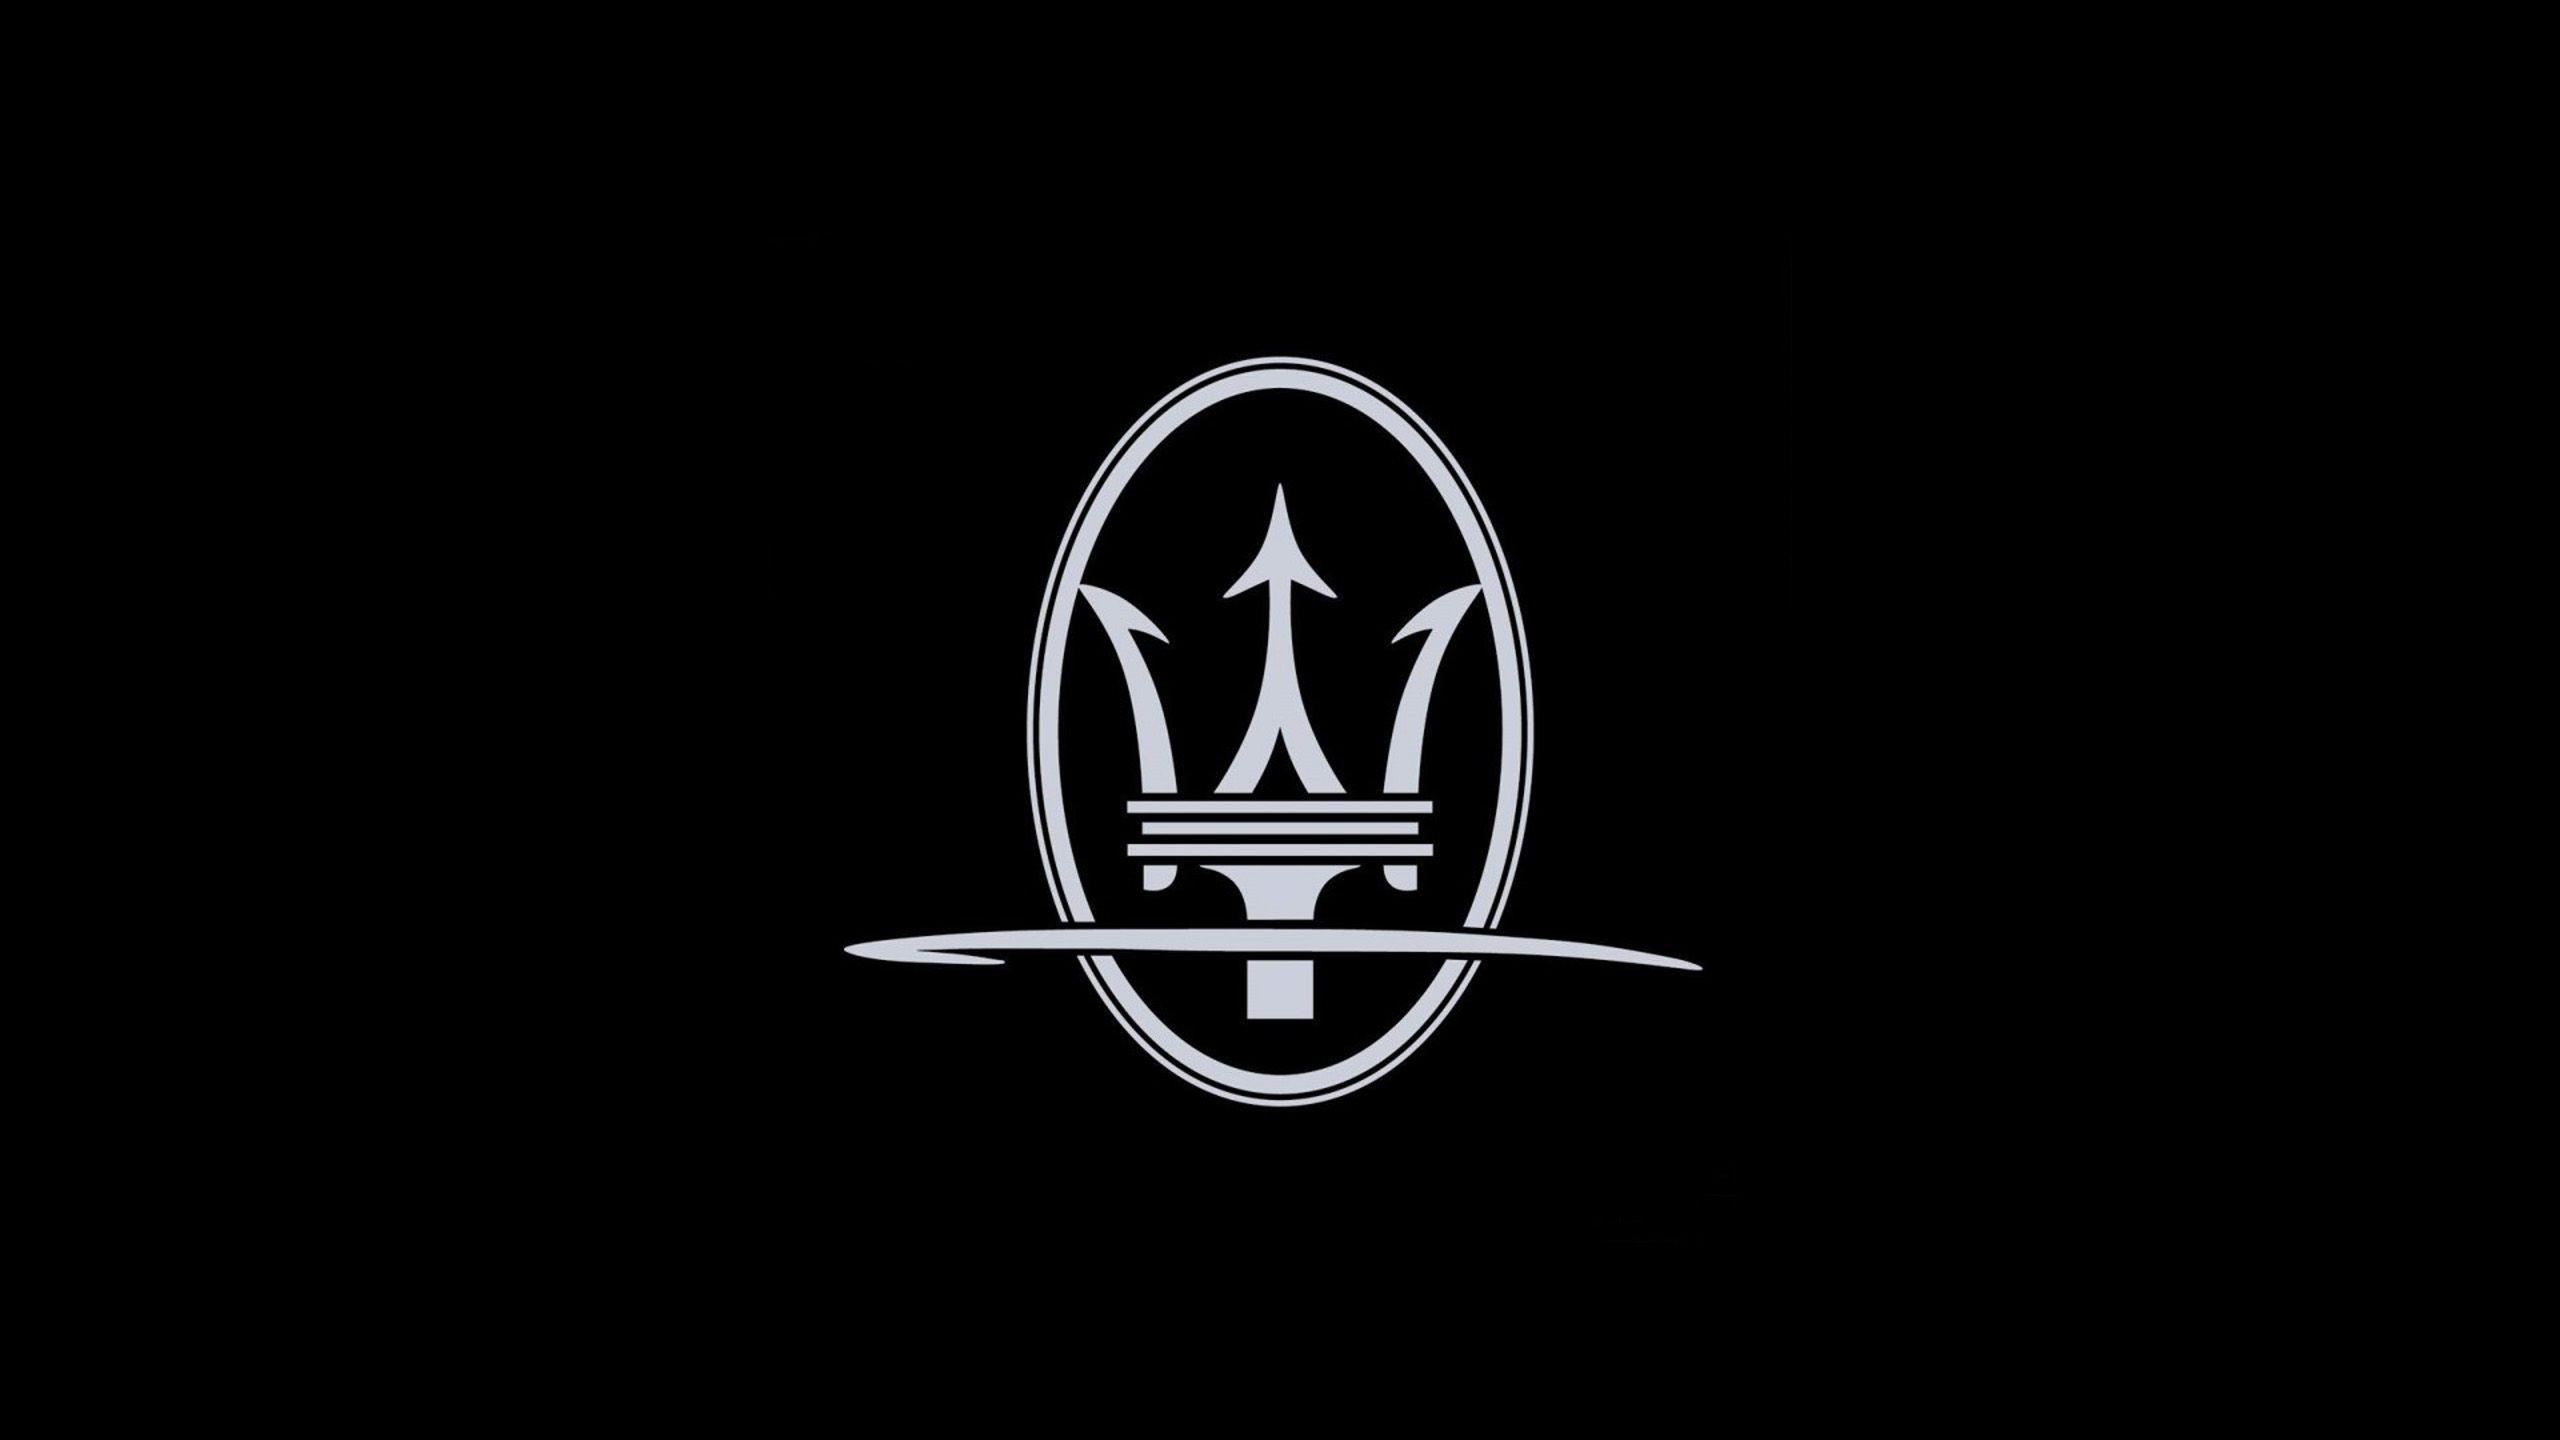 Maserati Logo - Maserati Logo Wallpapers - Wallpaper Cave